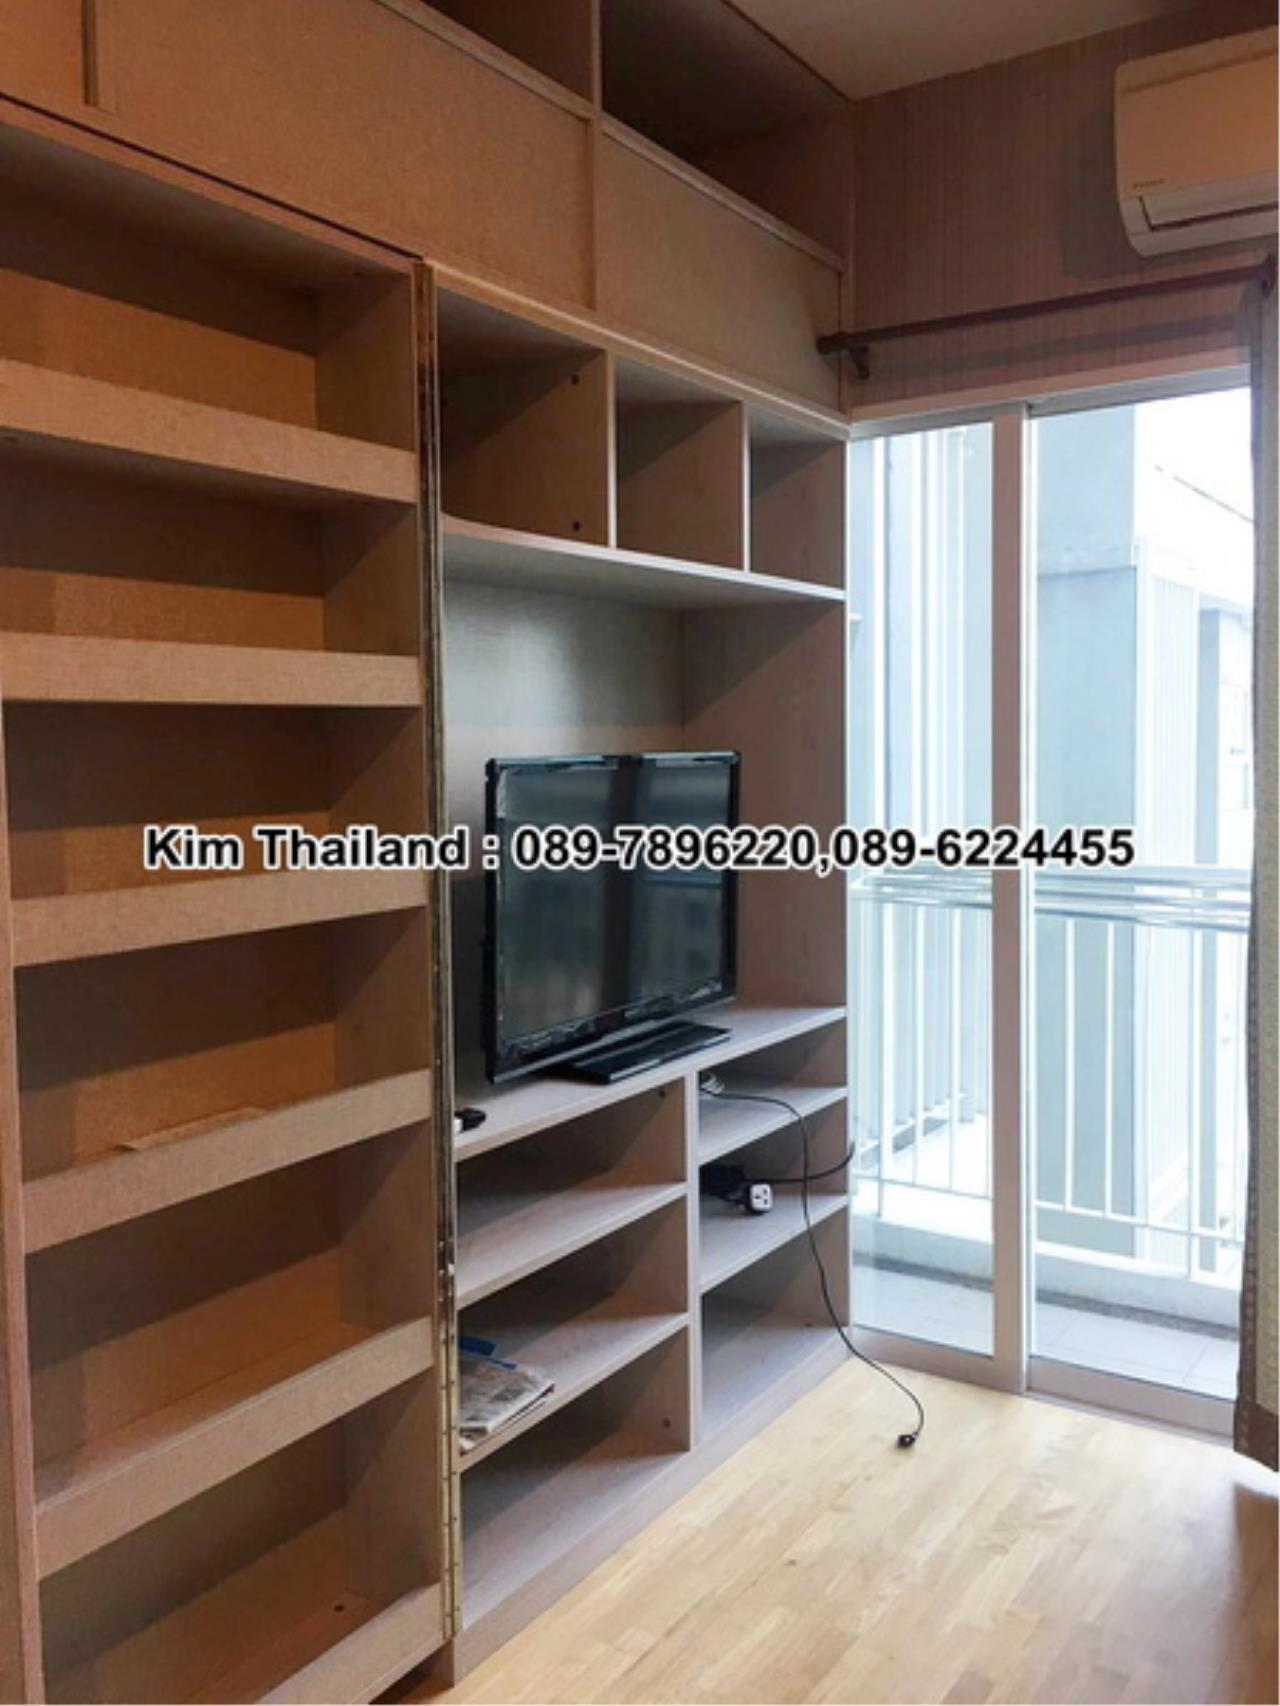 BKKcondorental Agency's For rent, Condo The Parkland Grand Asoke-Petchaburi., Area 35 sq.m. 1 bedroom. Rental 16,500 THB per month. 6